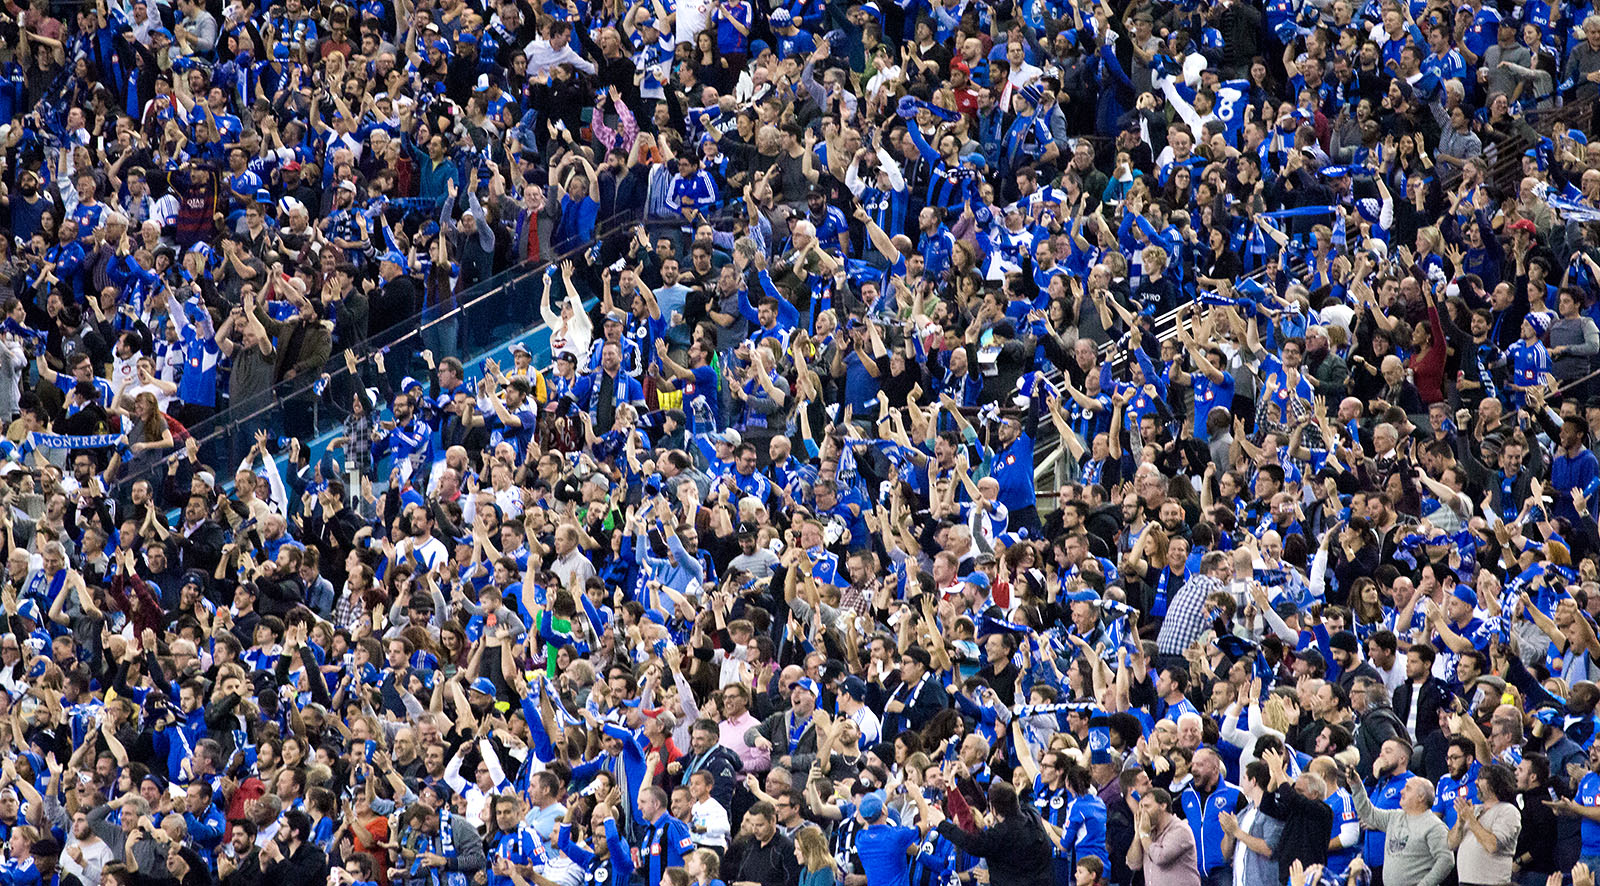 61000 fans packed the Olympic Stadium in Montreal for the first leg of the MLS Eastern Conference Final. Image by Dennis Marciniak of denMAR Media.